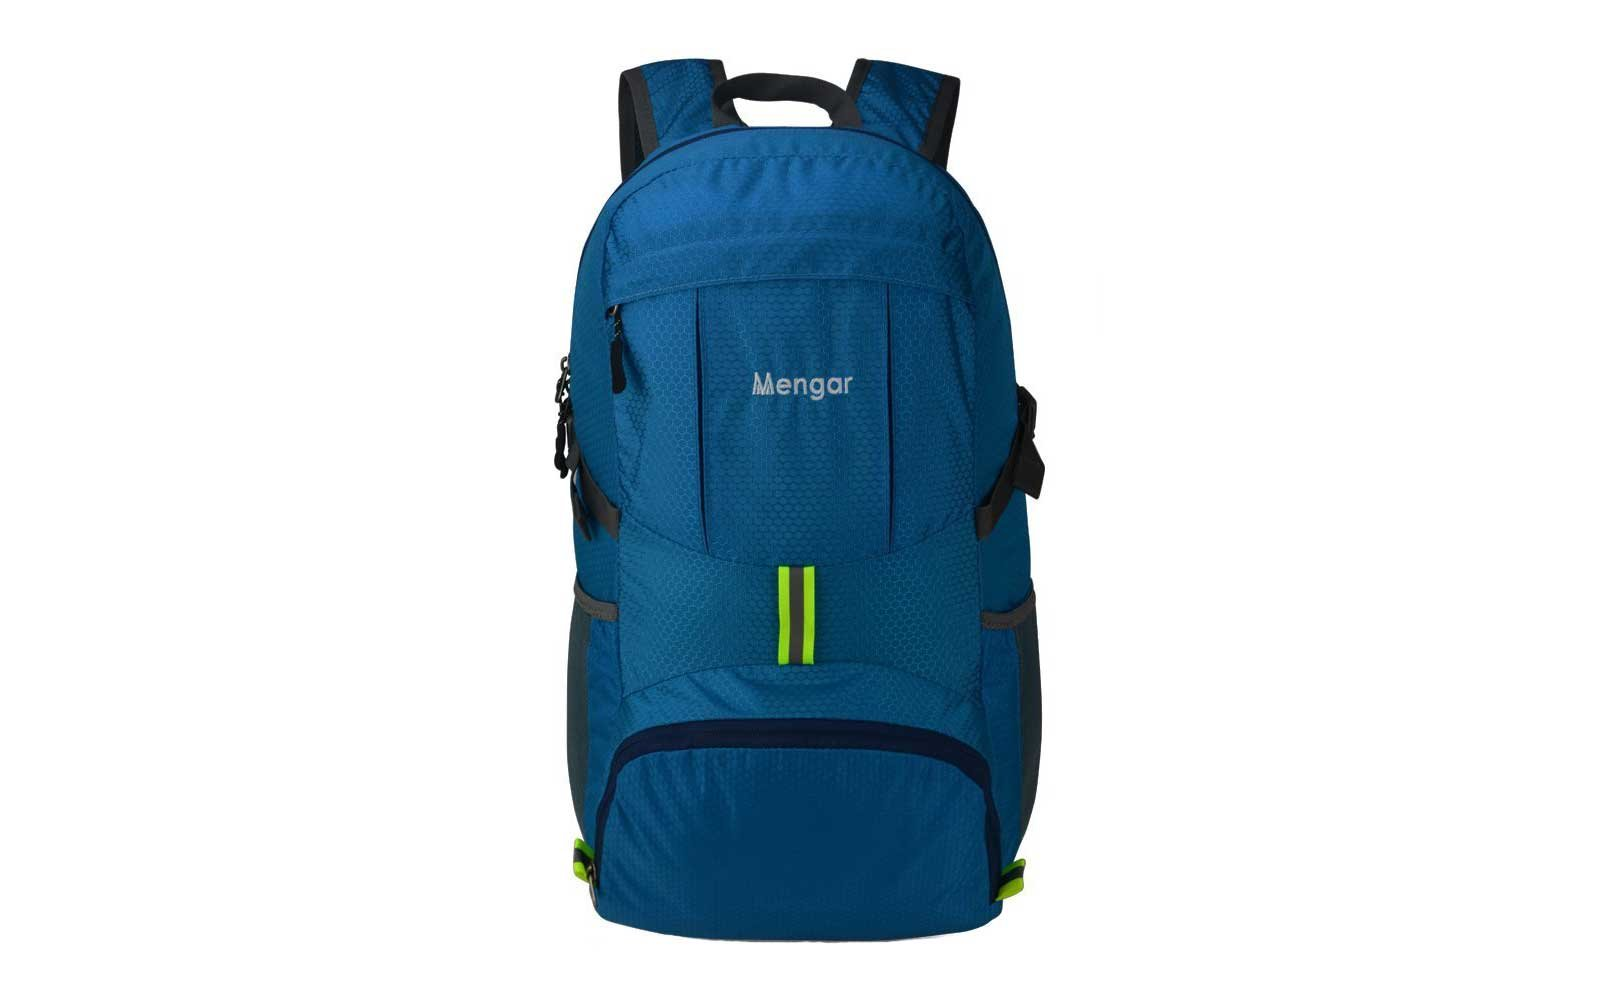 Blue waterproof backpack from Mengar